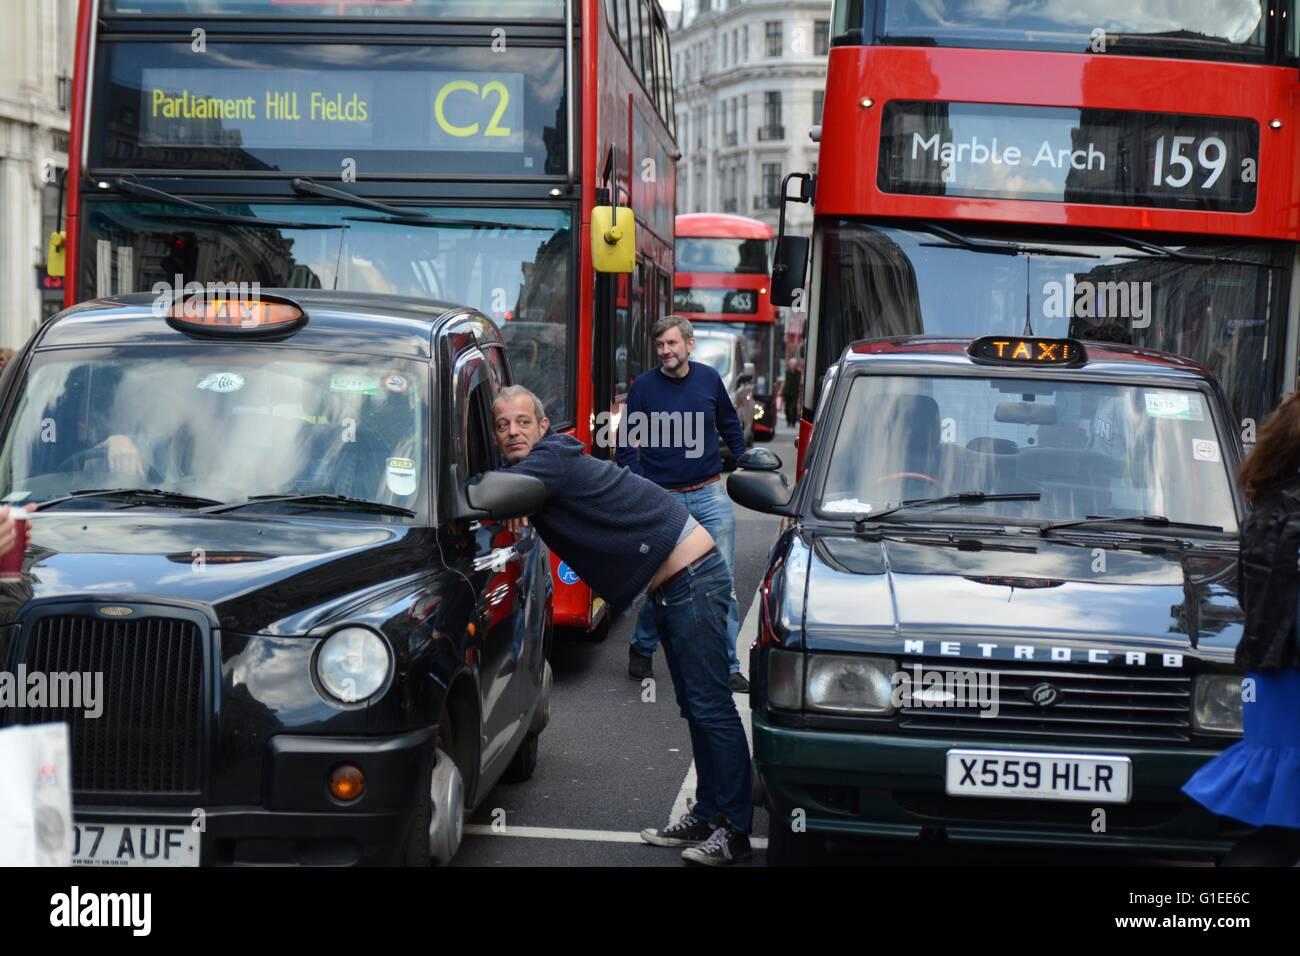 London, UK. 14th May 2016. Cabbies relax as they wait for the march to progress. Credit: Marc Ward/Alamy Live News Stock Photo